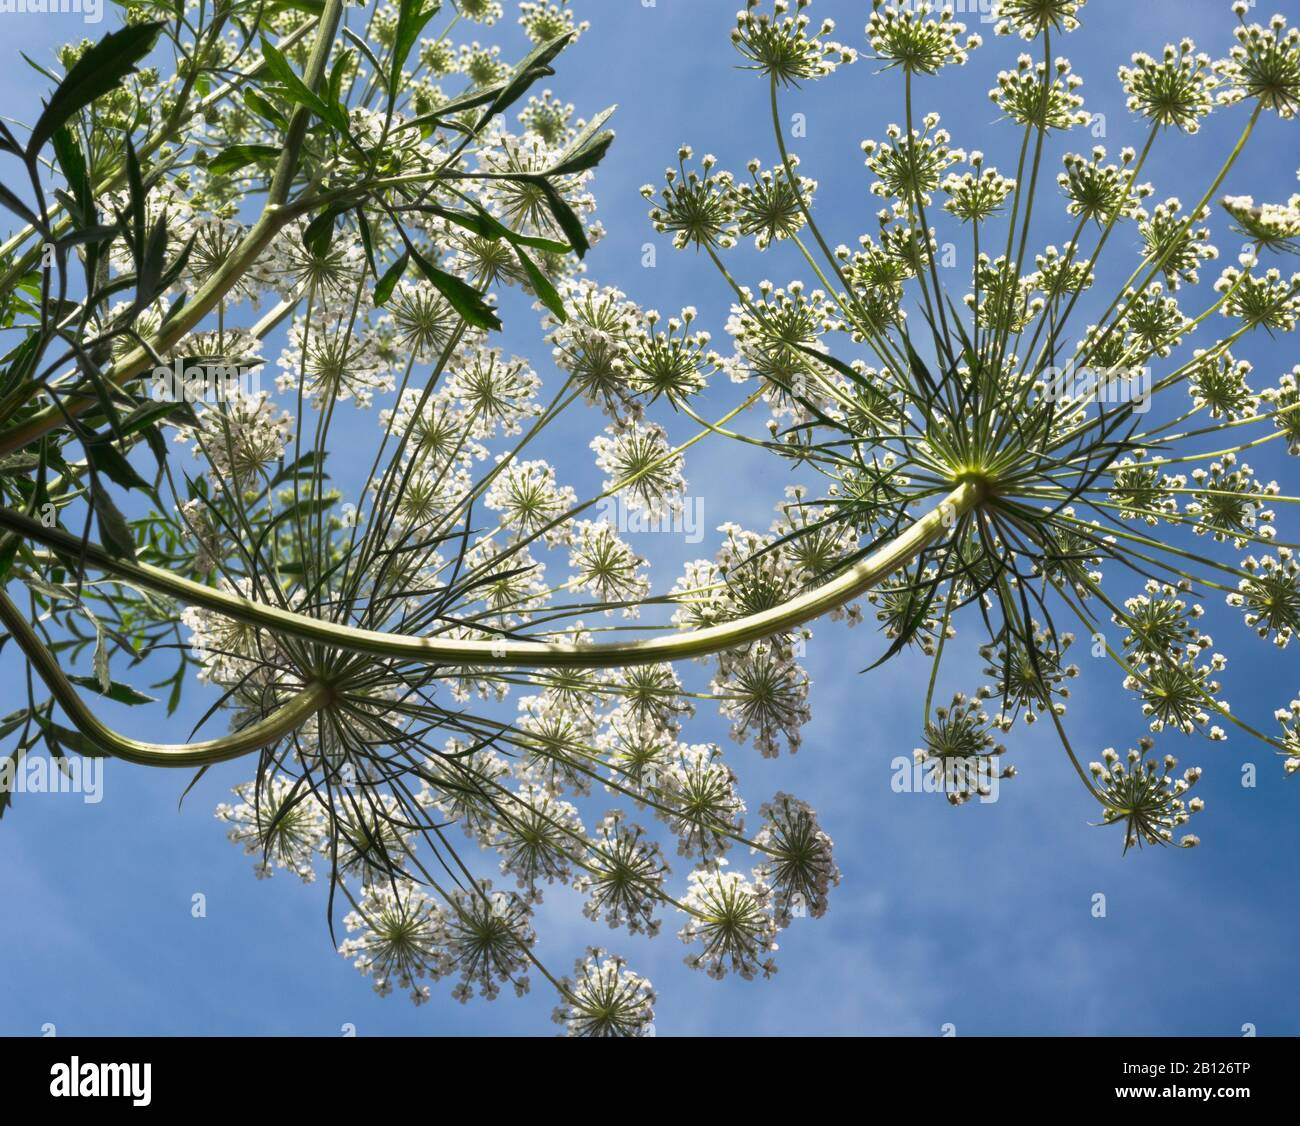 Ammi majus, Apiaceae, Bishop's Weed, false Queen Anne's lace, Grown from seed in UK gardens annually for its pretty white lace-like flower clusters. Stock Photo